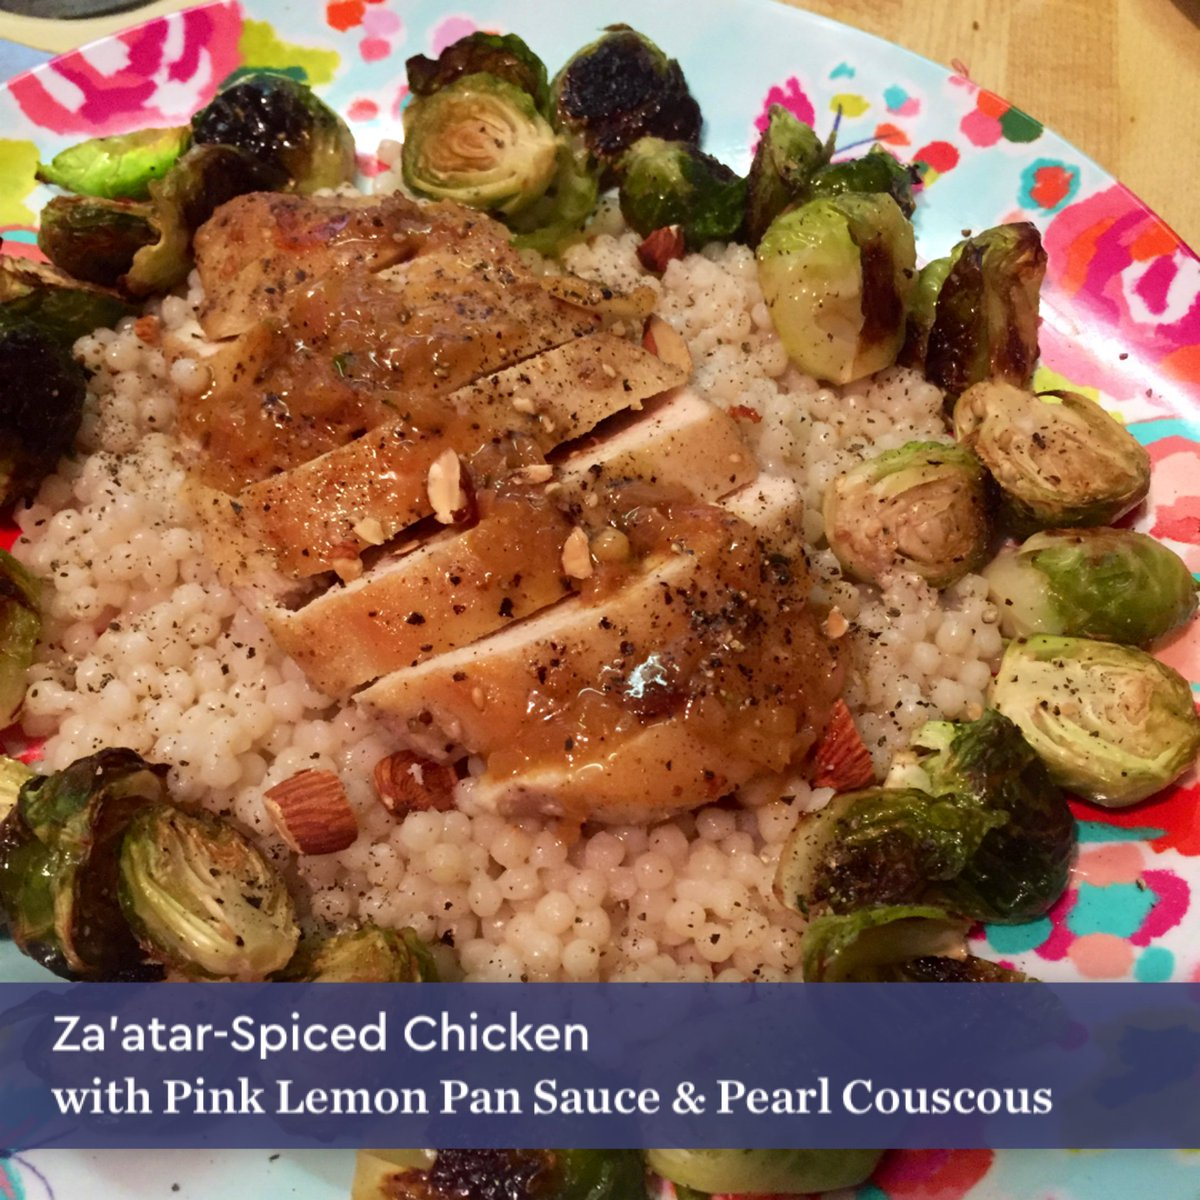 Blue apron za'atar spiced chicken - Lynnette Johnson On Twitter This Is Definitely A Yum Za Atar Spiced Chicken W Pink Lemon Pan Sauce Pearl Couscous Blueapron Https T Co Mpzcmo85se